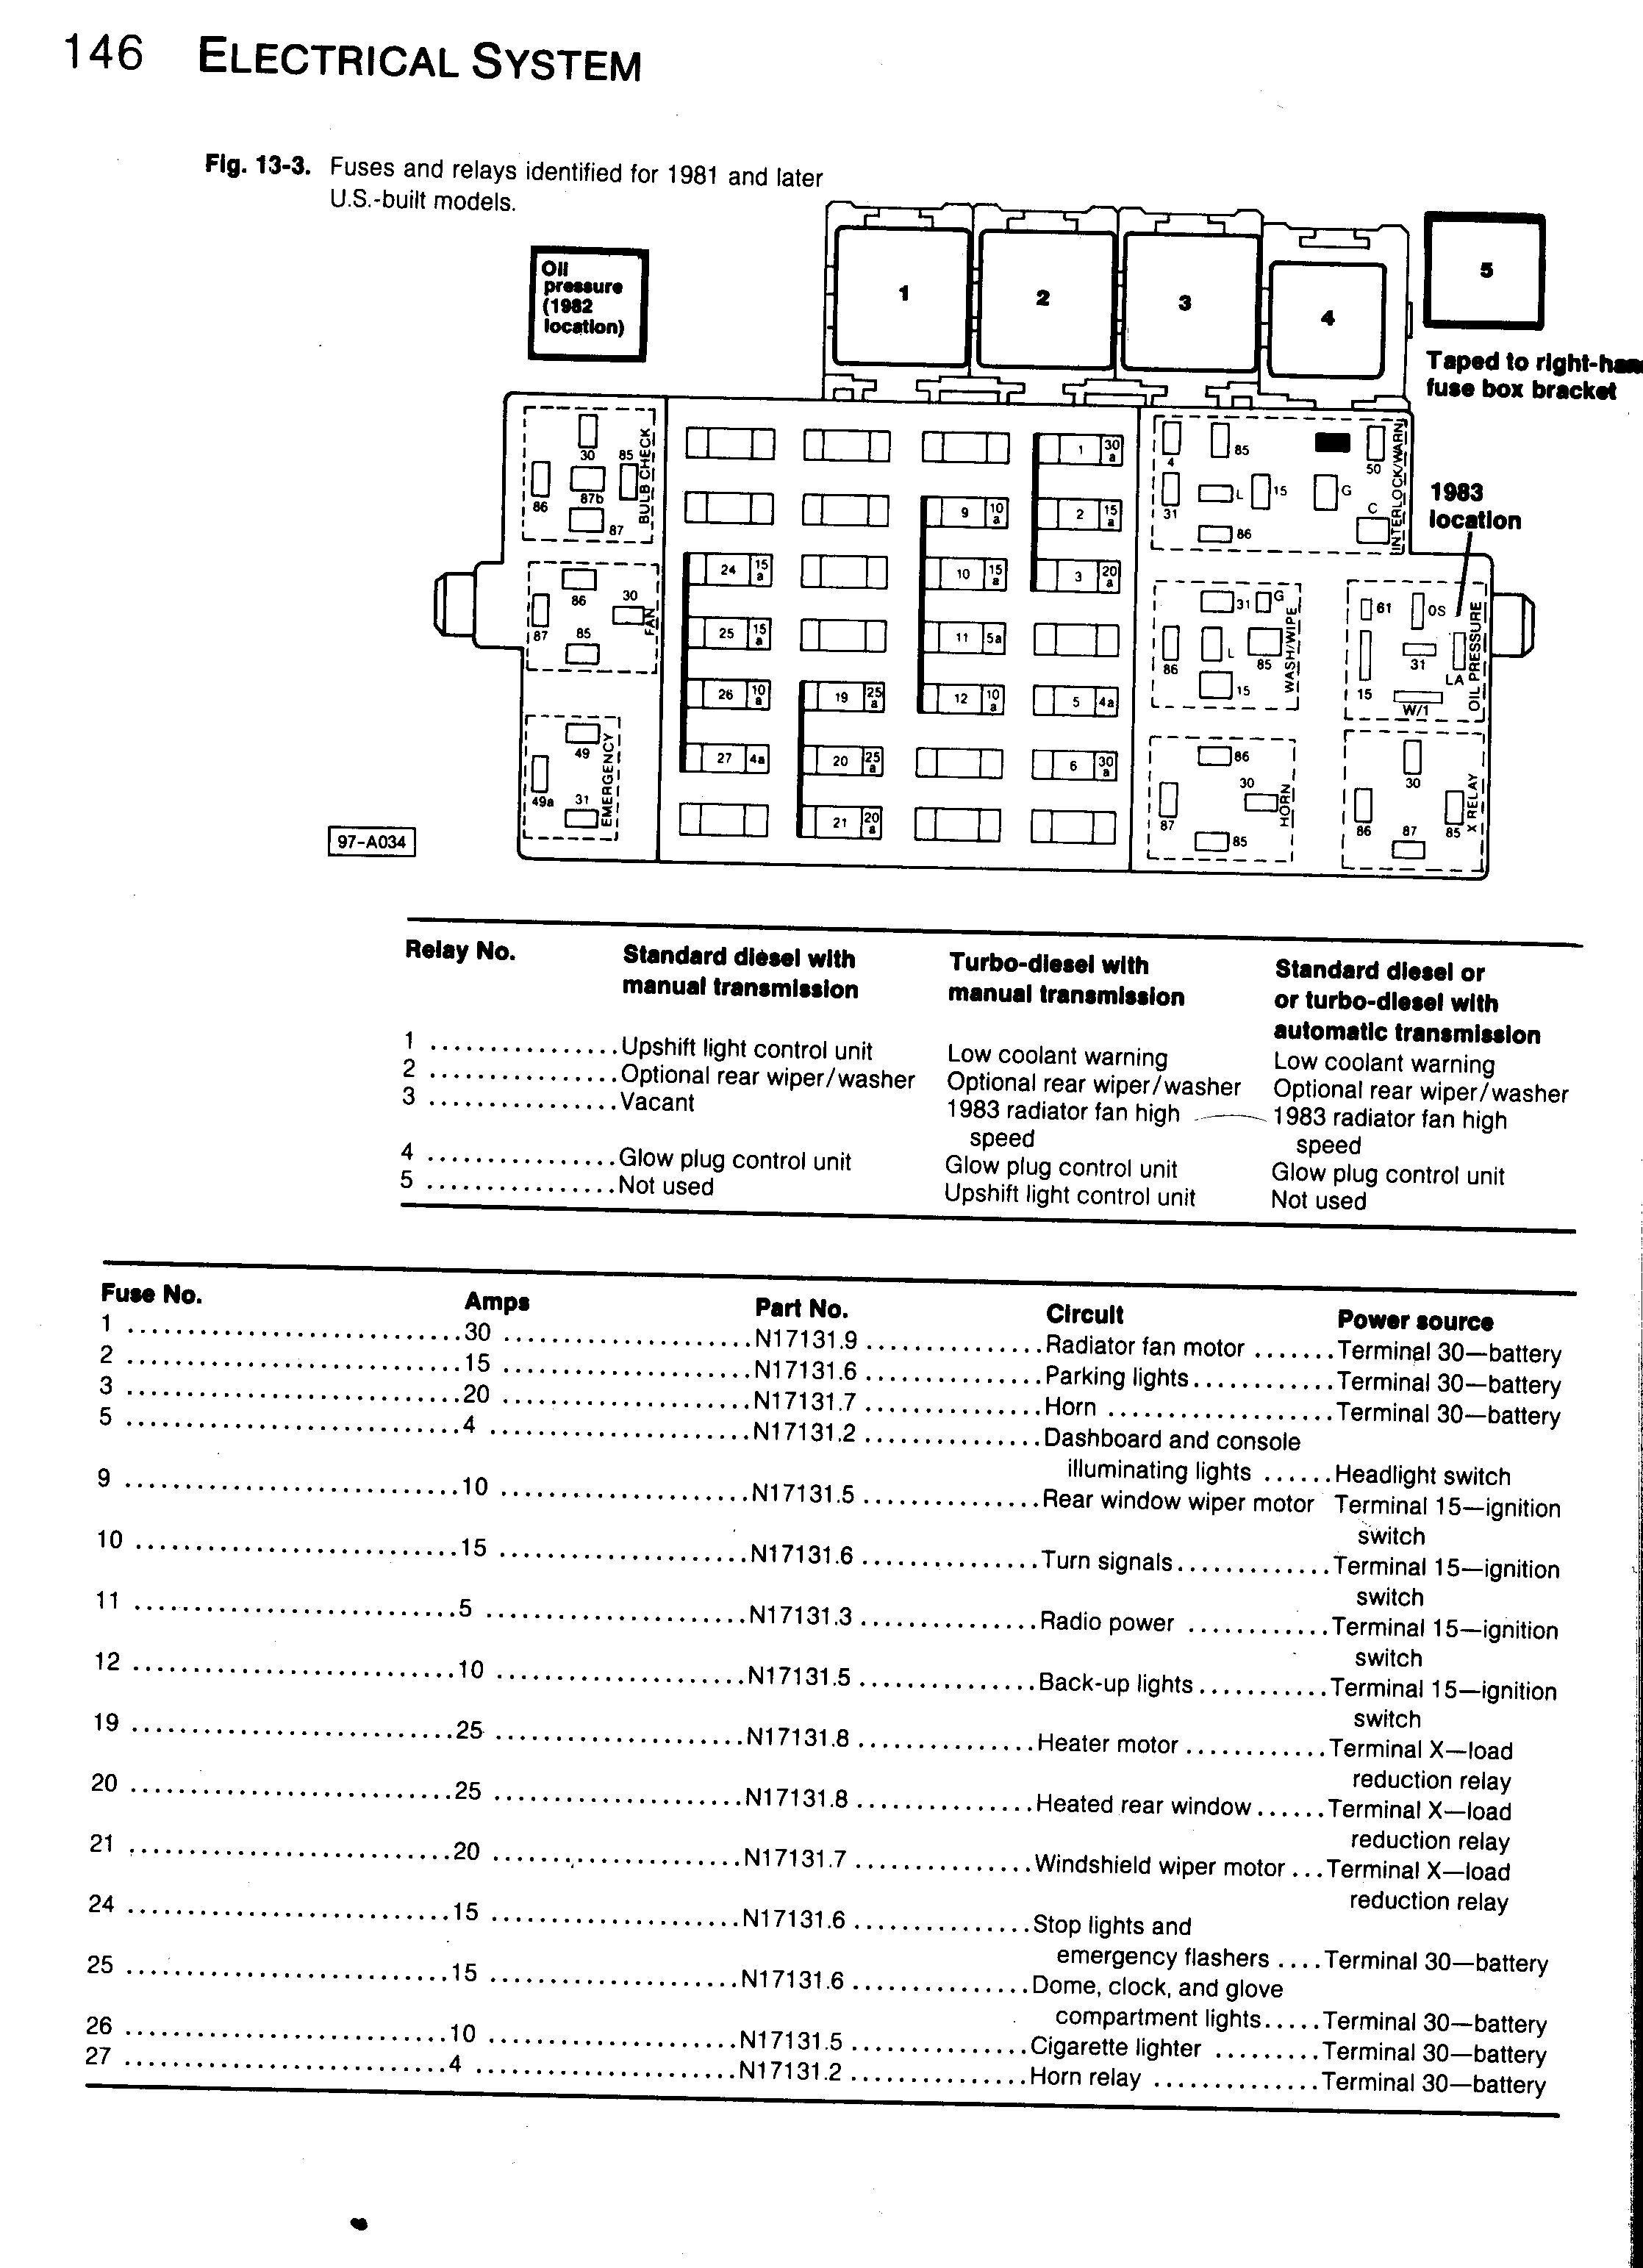 63 vw fuse diagram expert schematics diagram rh atcobennettrecoveries com  2008 vw gti fuse box diagram 2010 vw gti fuse box diagram